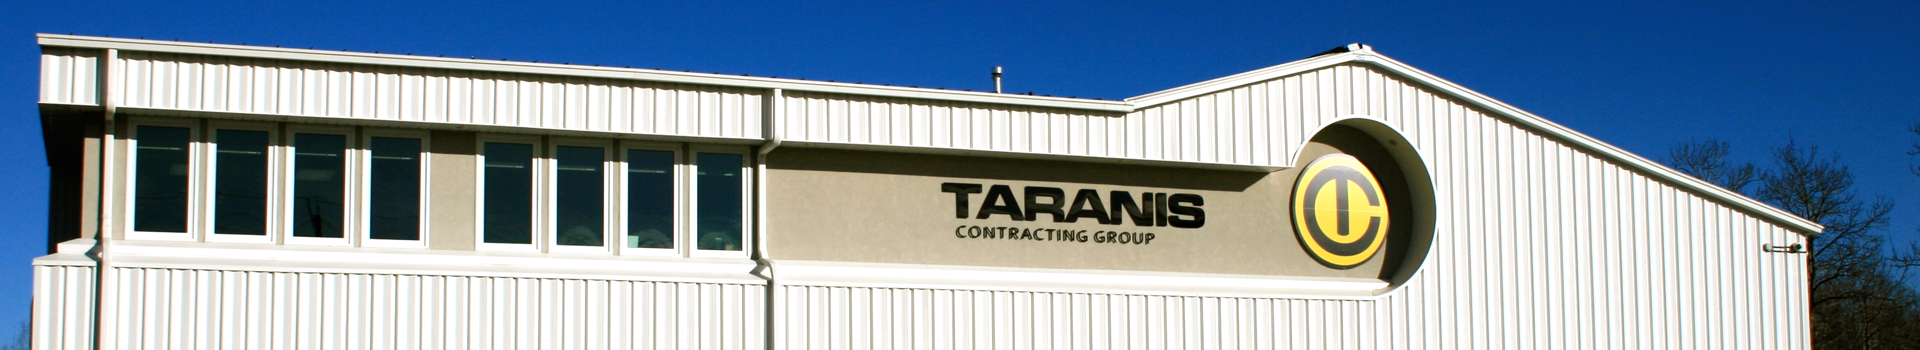 Taranis main office image